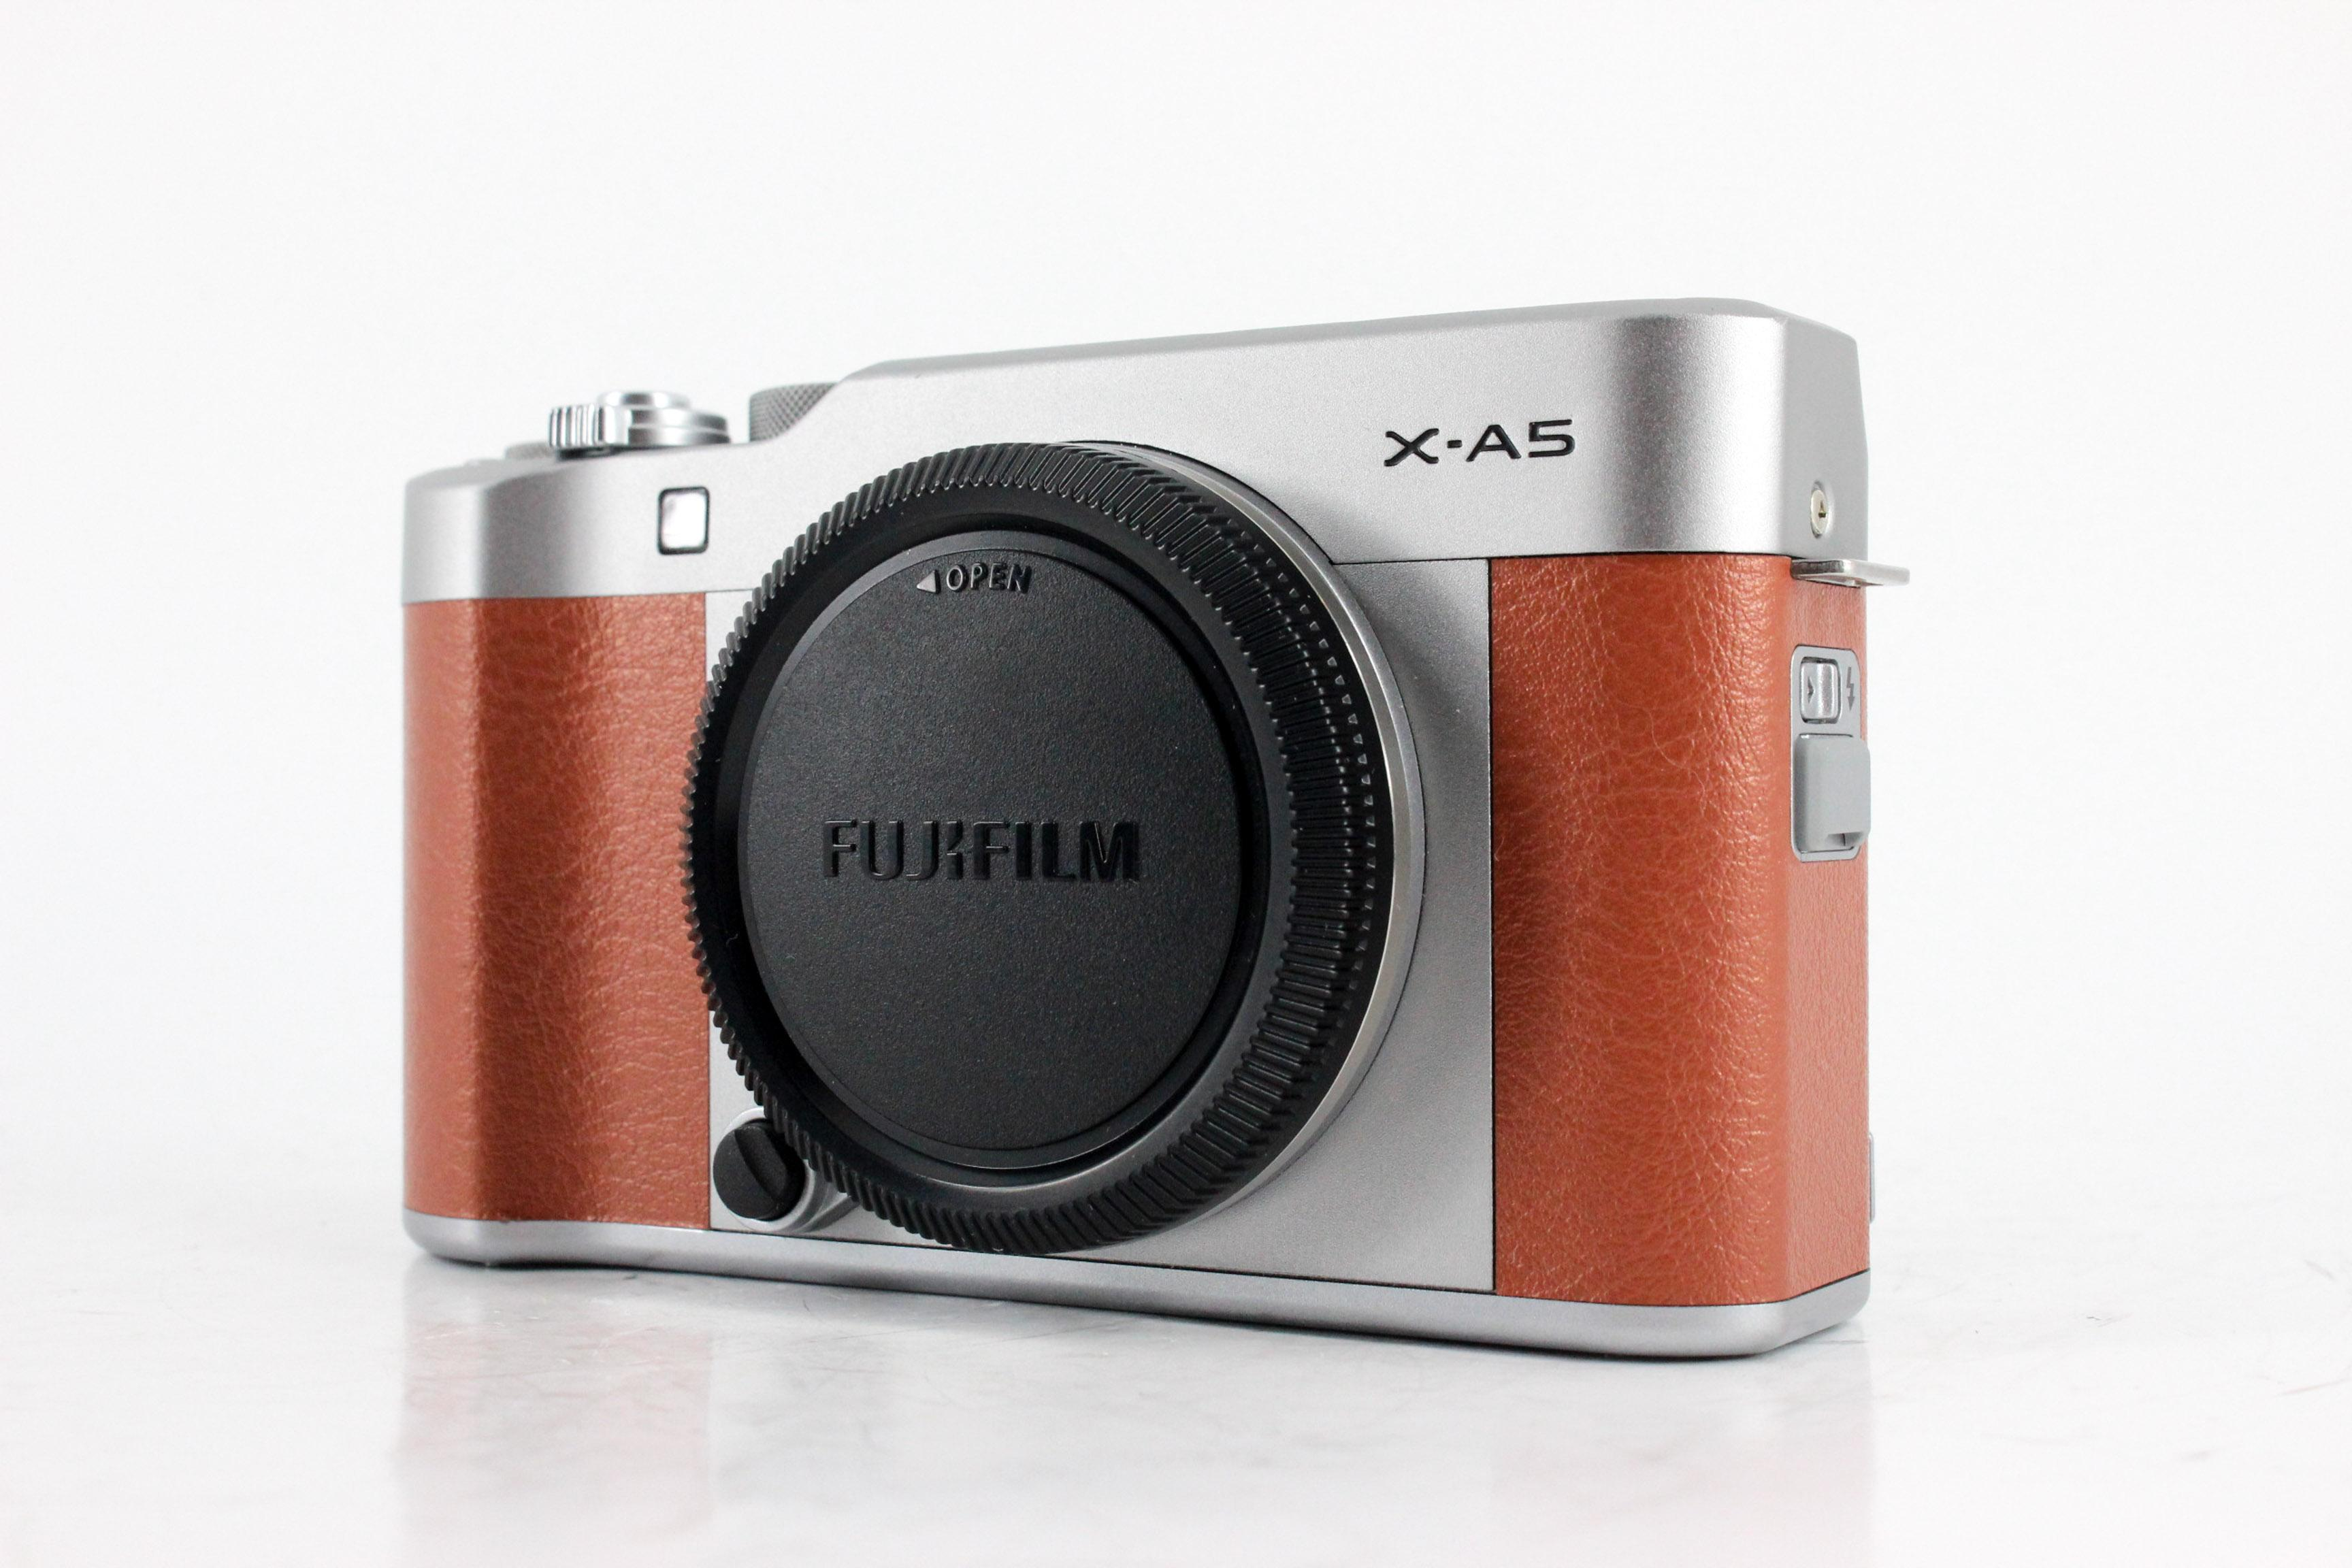 fujifilm x a5 front image